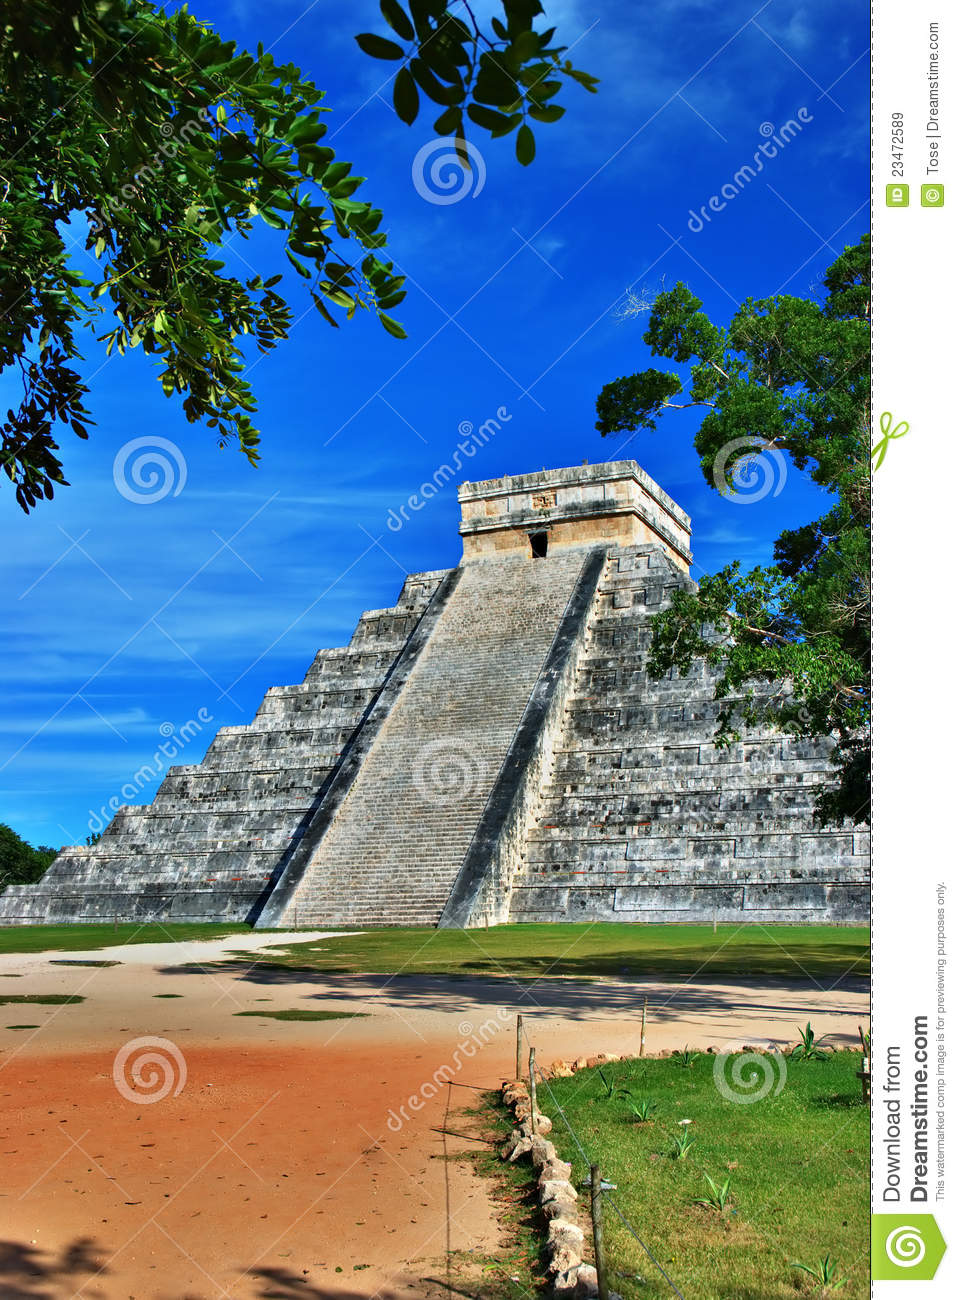 Pyramid Of Kukulcan, Chichen Itza, Mexico Royalty Free